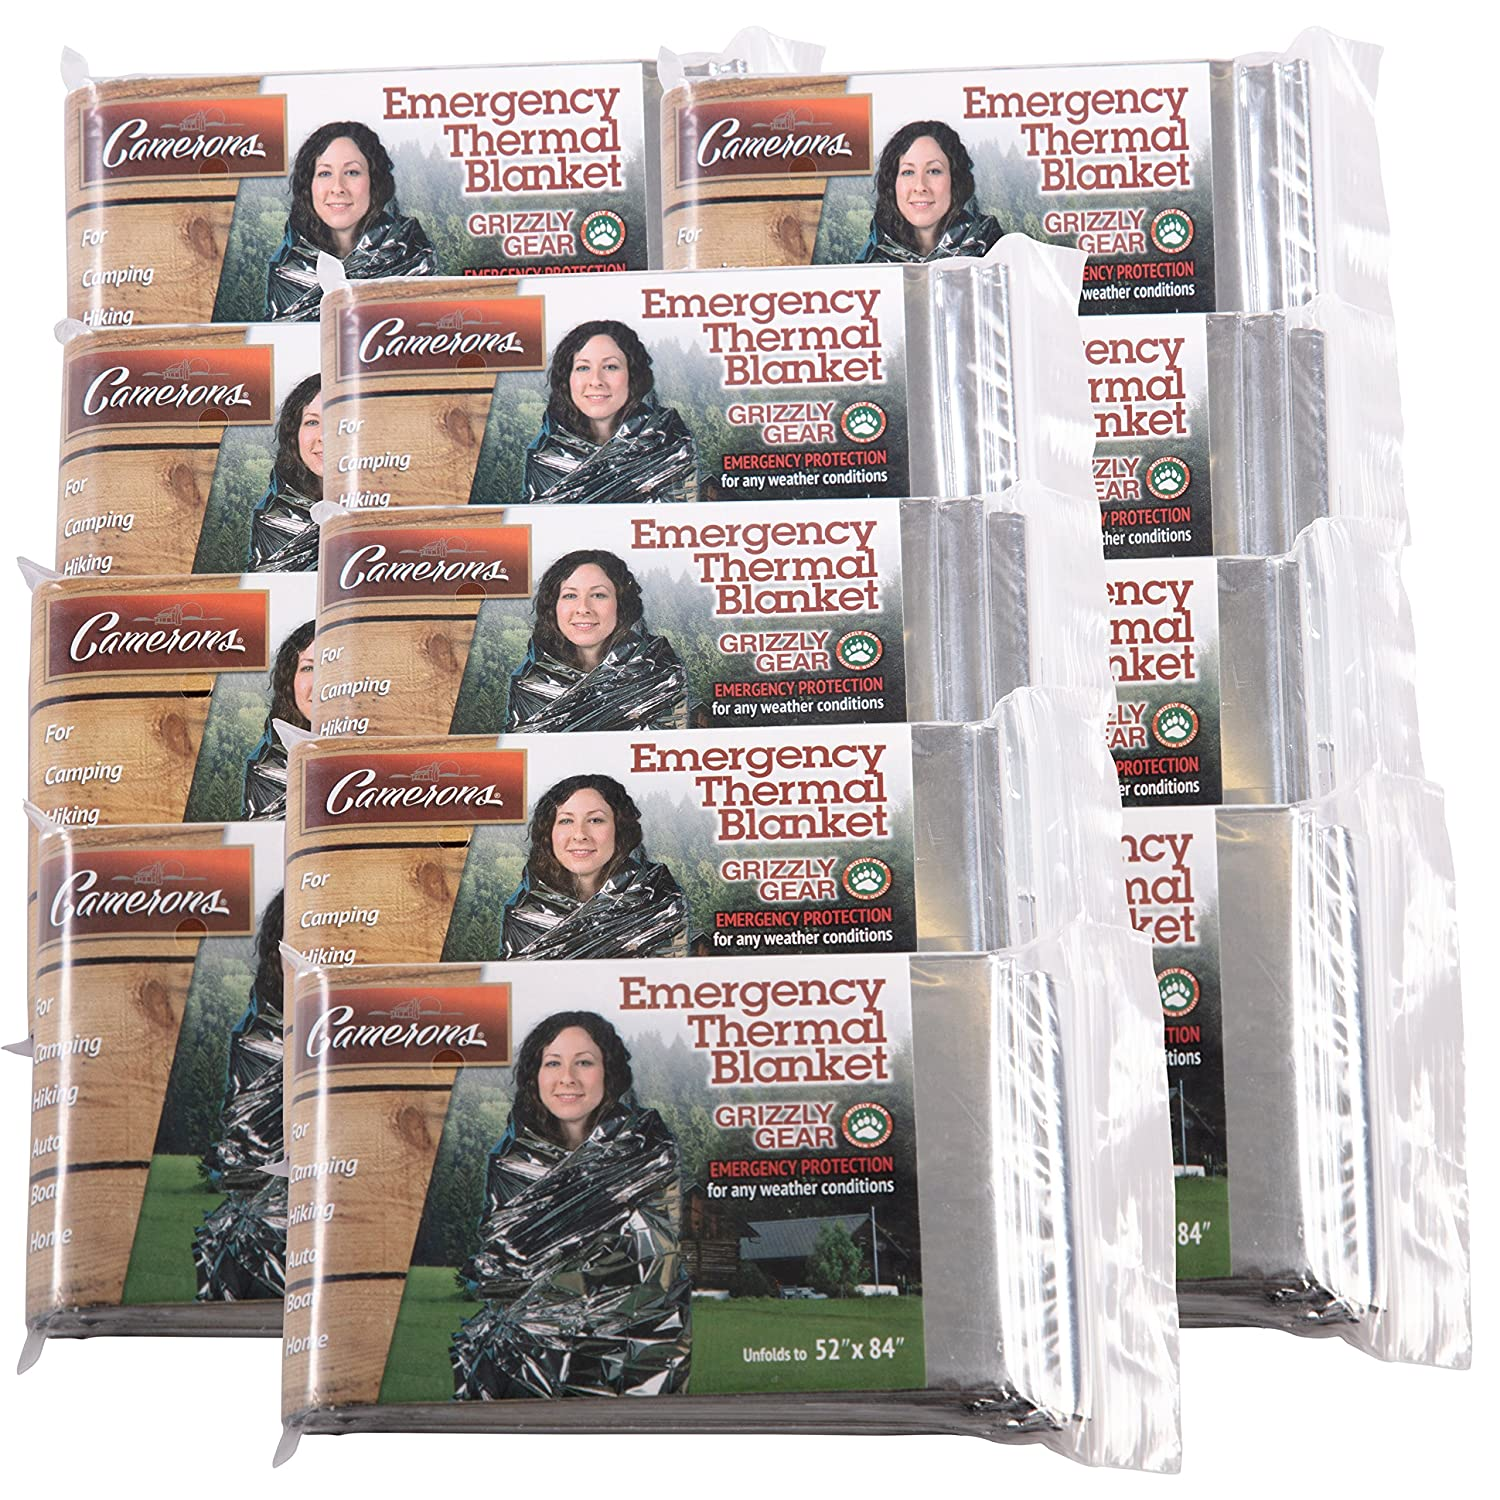 Emergency Thermal Blankets (12 Pack) - Grizzly Gear - Folds to 52' X 84' SCS Direct